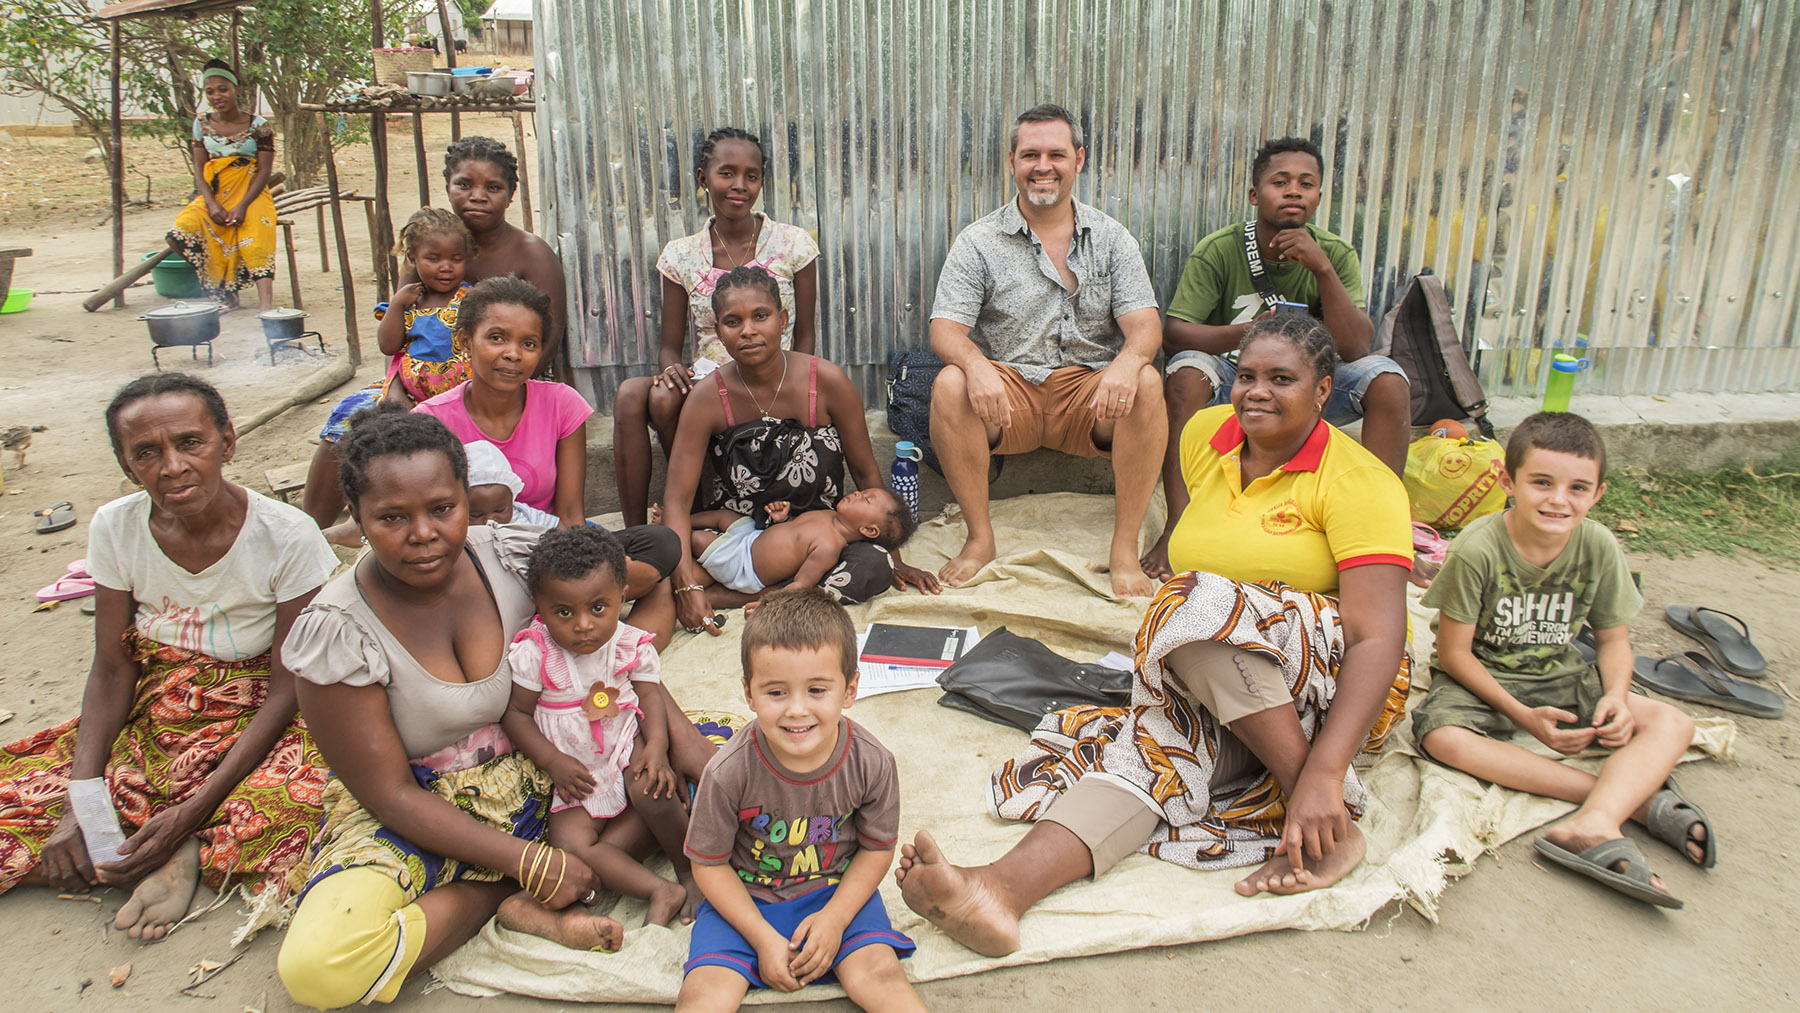 The discipleship group in Antanamazava.  Nuckiline is sitting towards the right in the yellow shirt.